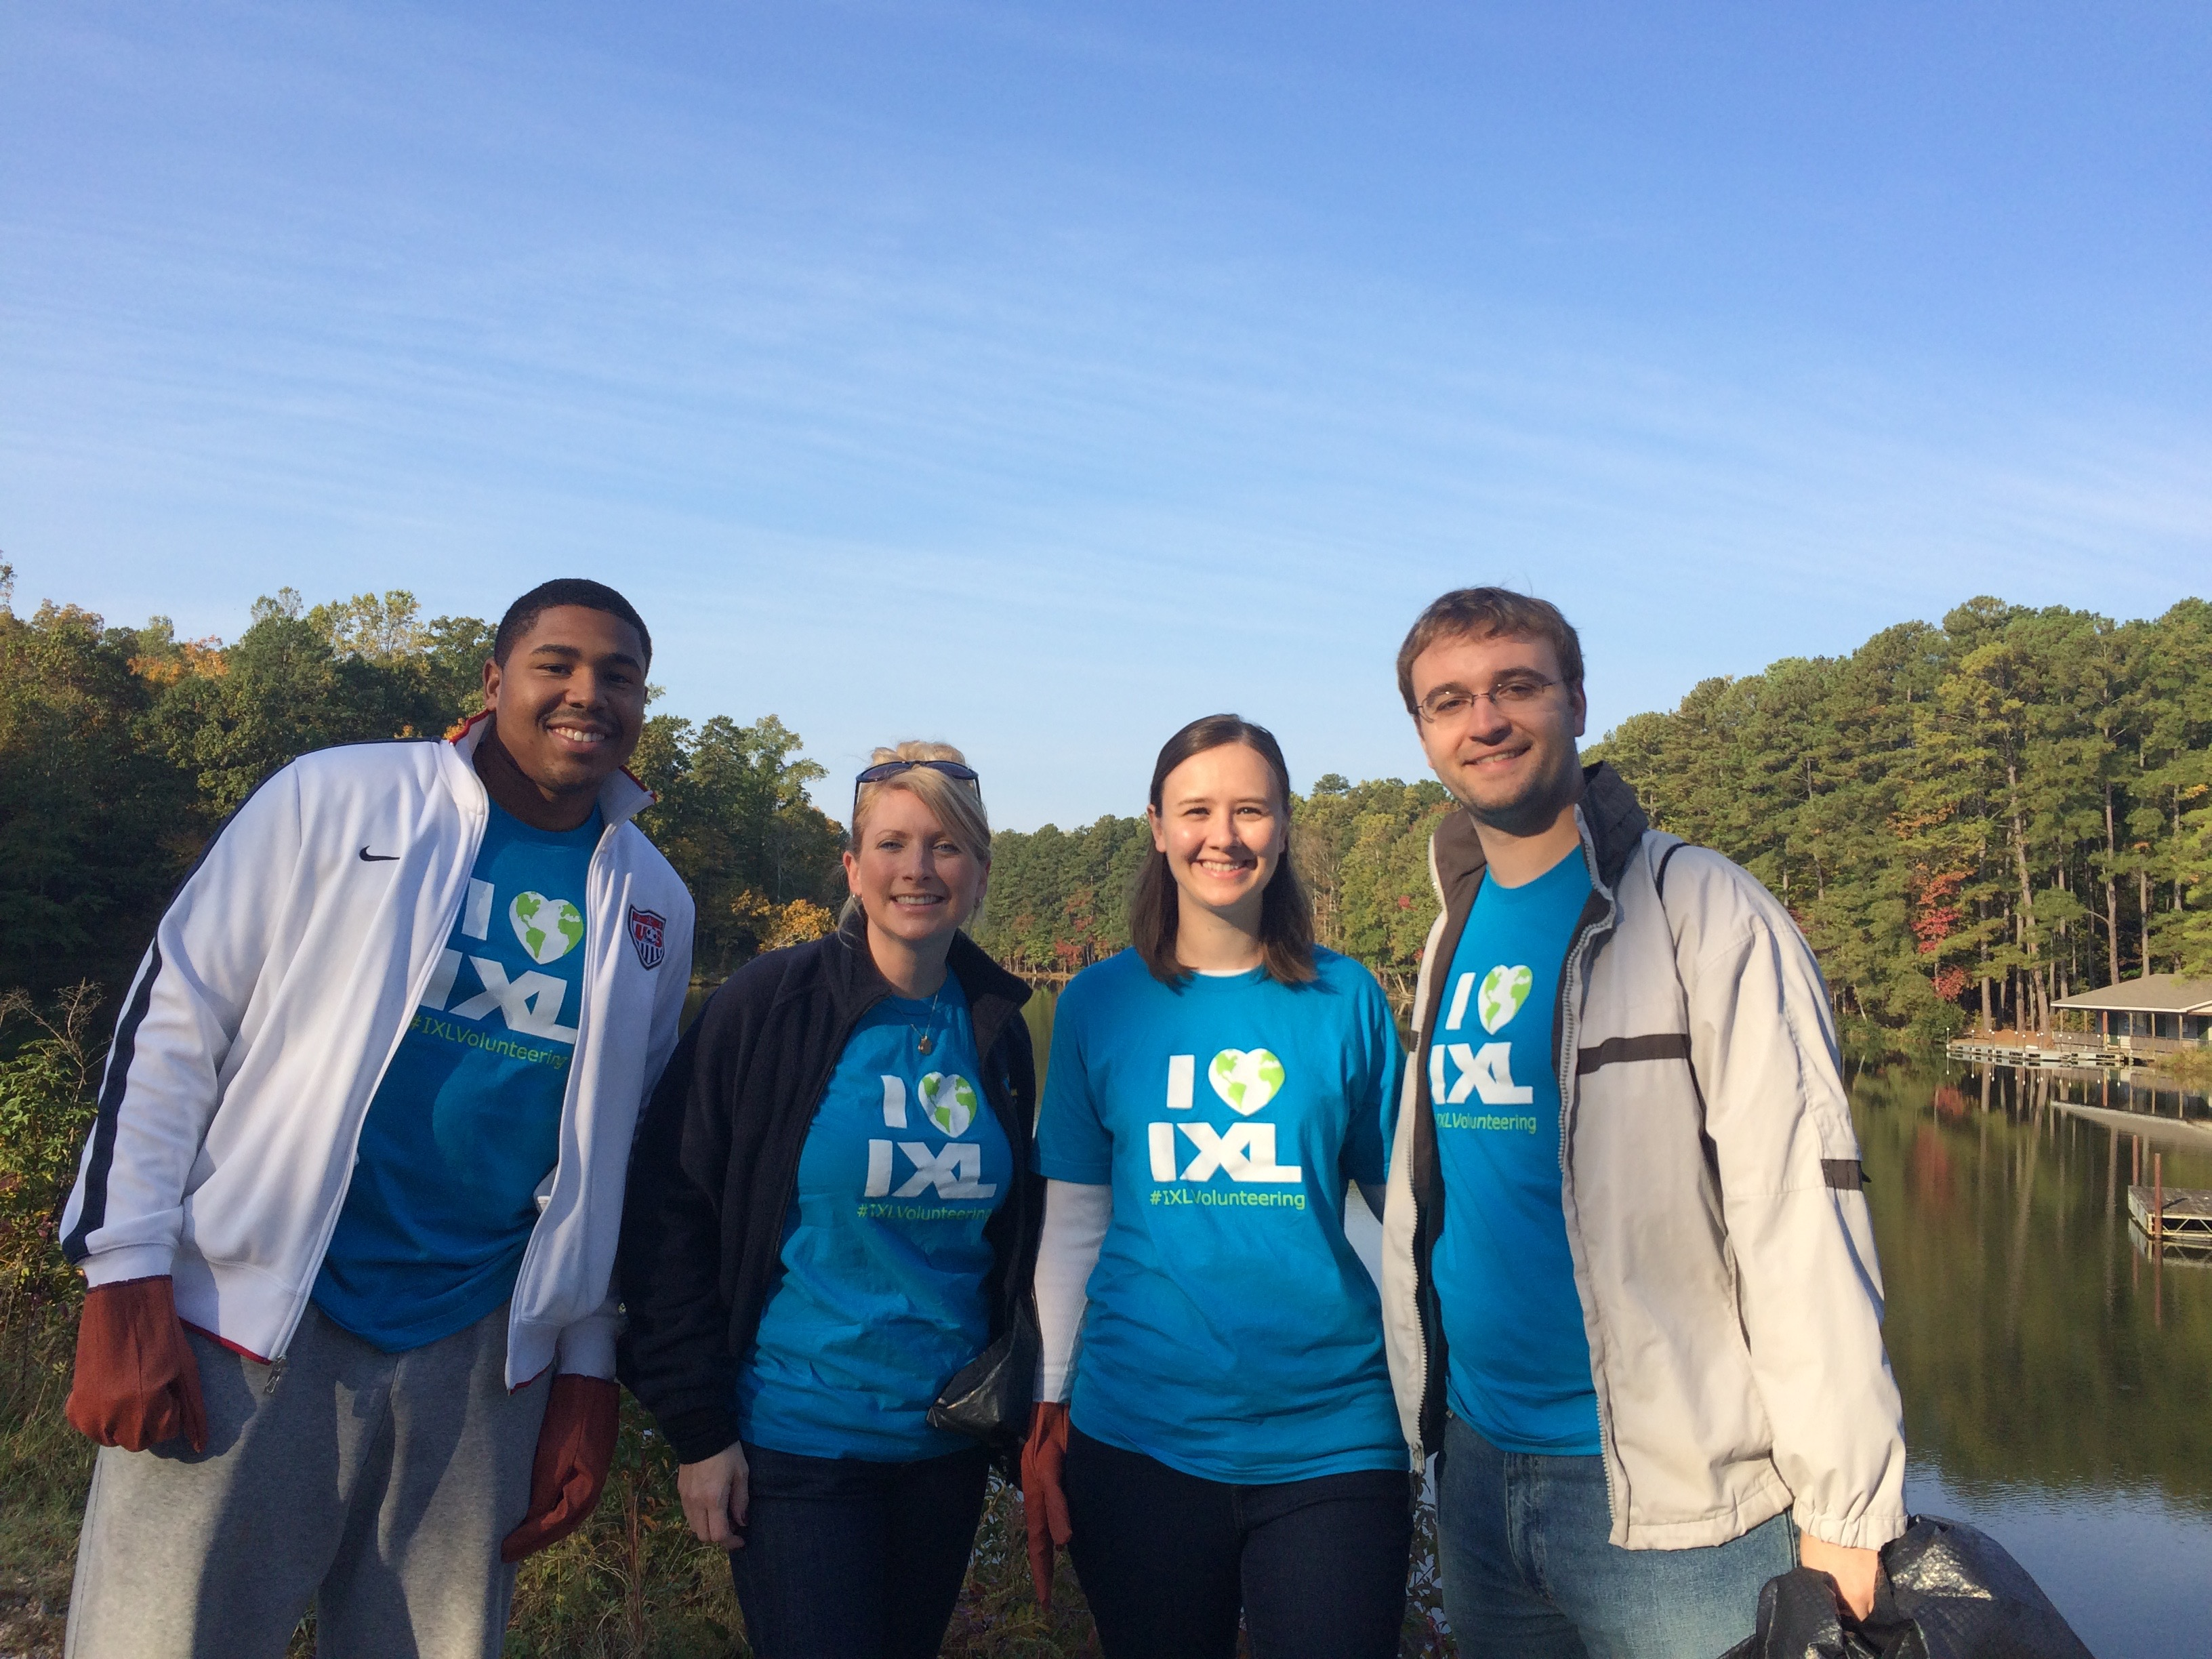 IXL Volunteering: The Raleigh Team Ventures to the Great Outdoors